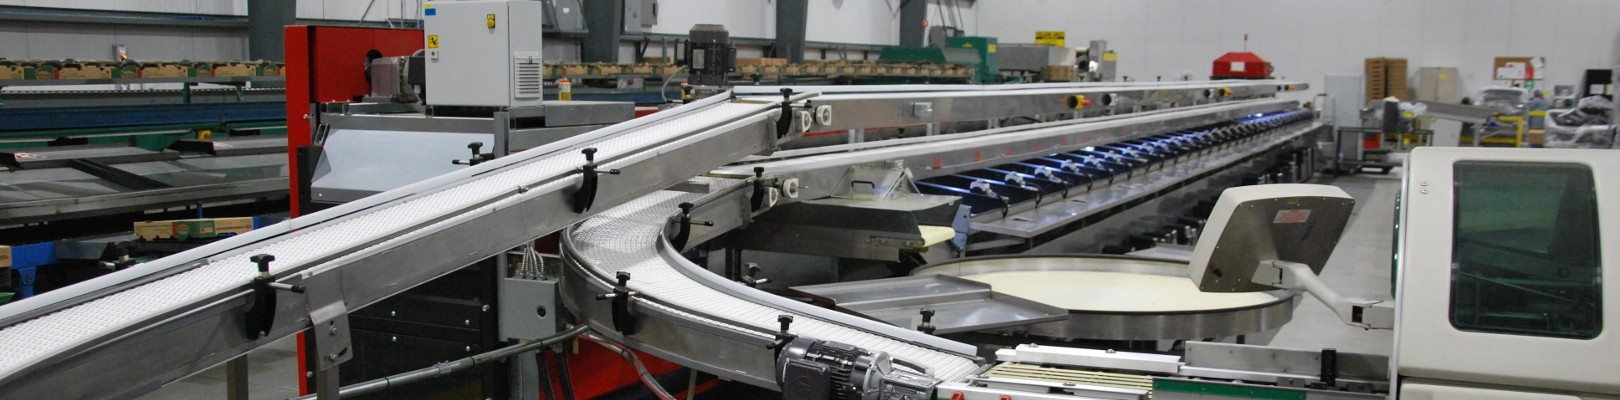 packing-line-conveyors